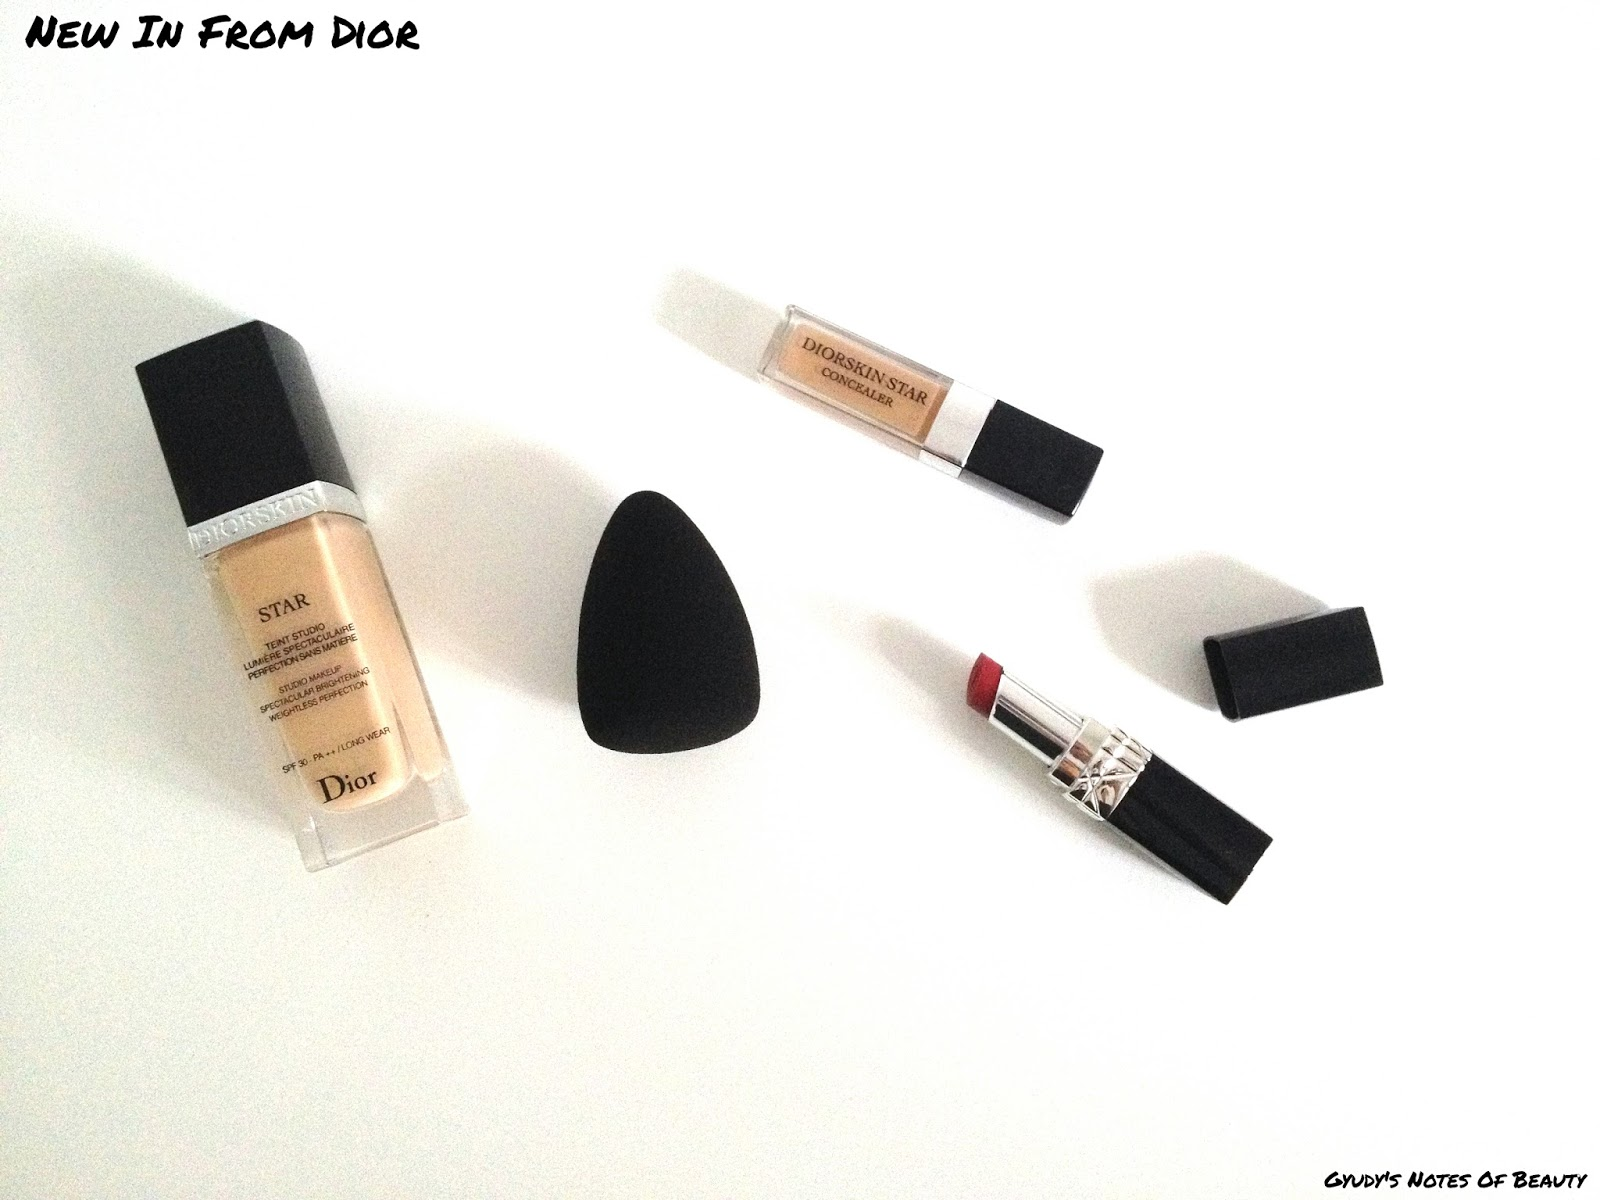 Diorskin Star Backstage Rouge Dior Baume Coquette